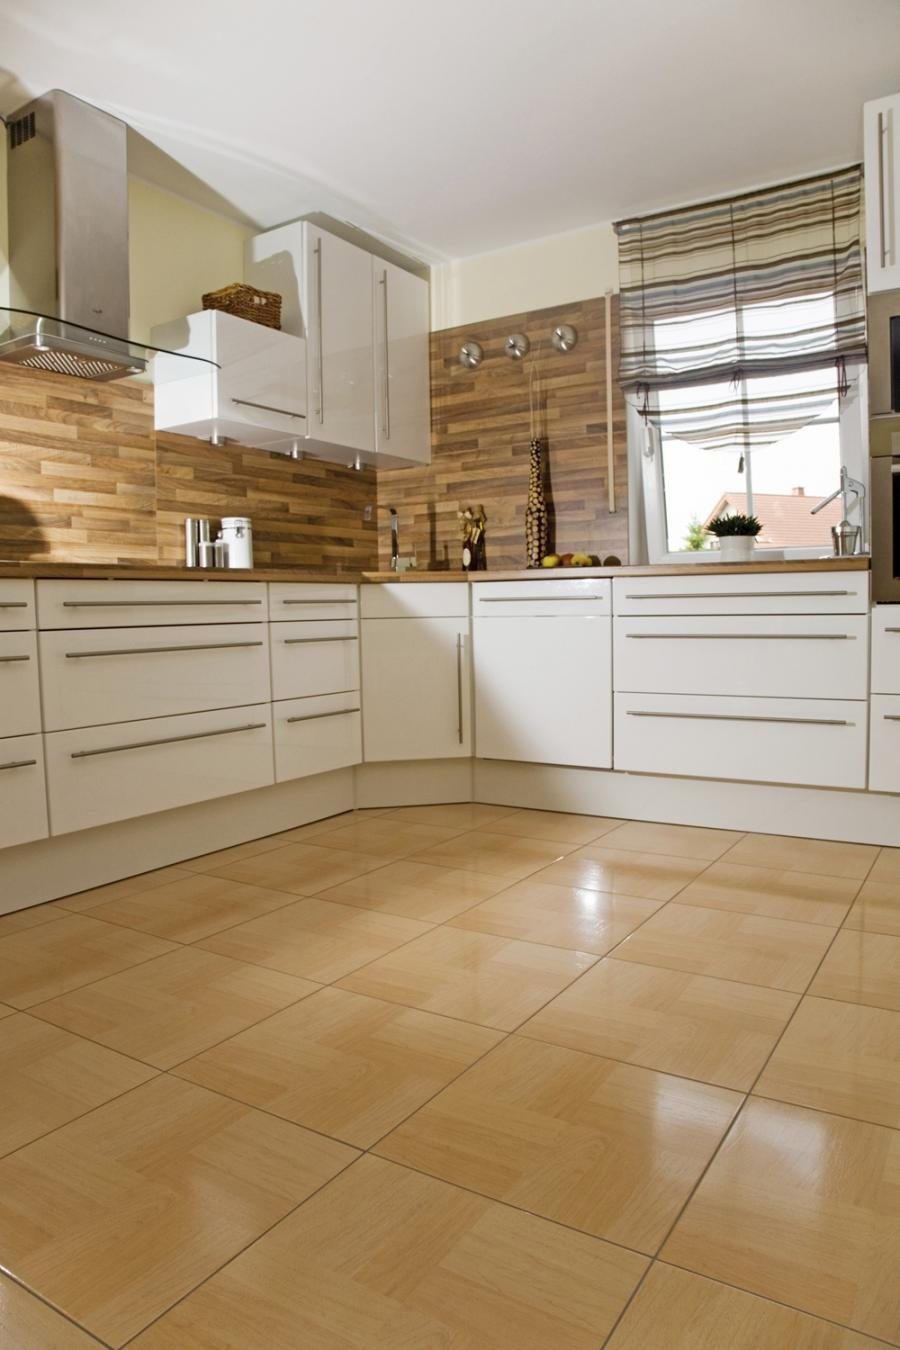 Kitchen Ceramic Tile Floor Photos